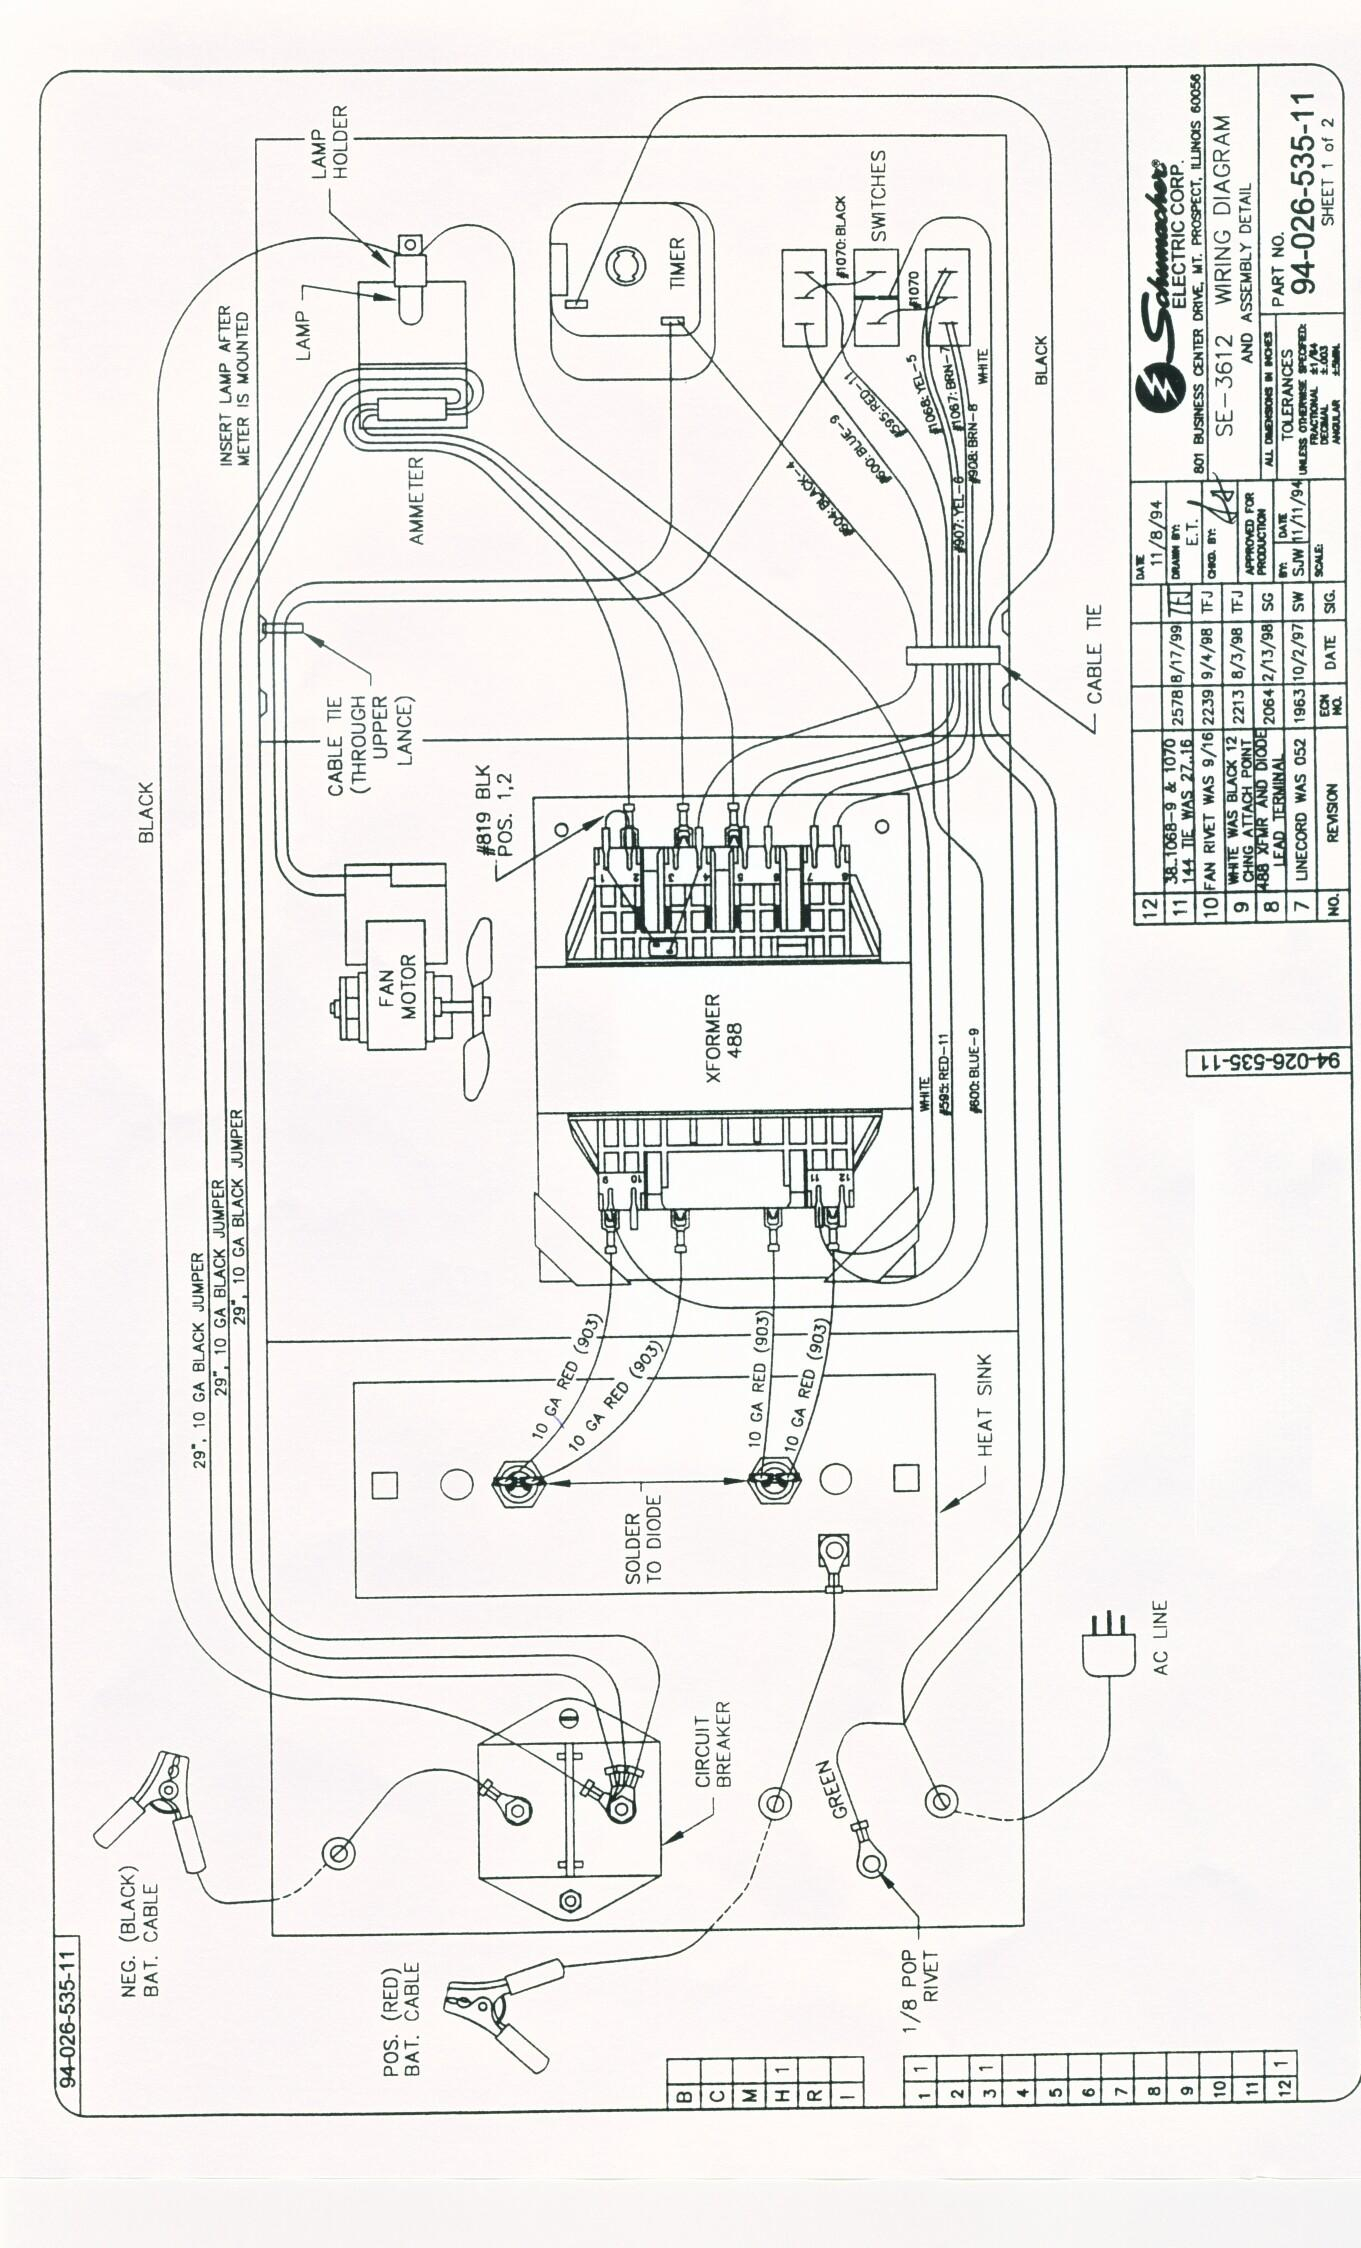 wiring diagram for braeburn thermostat